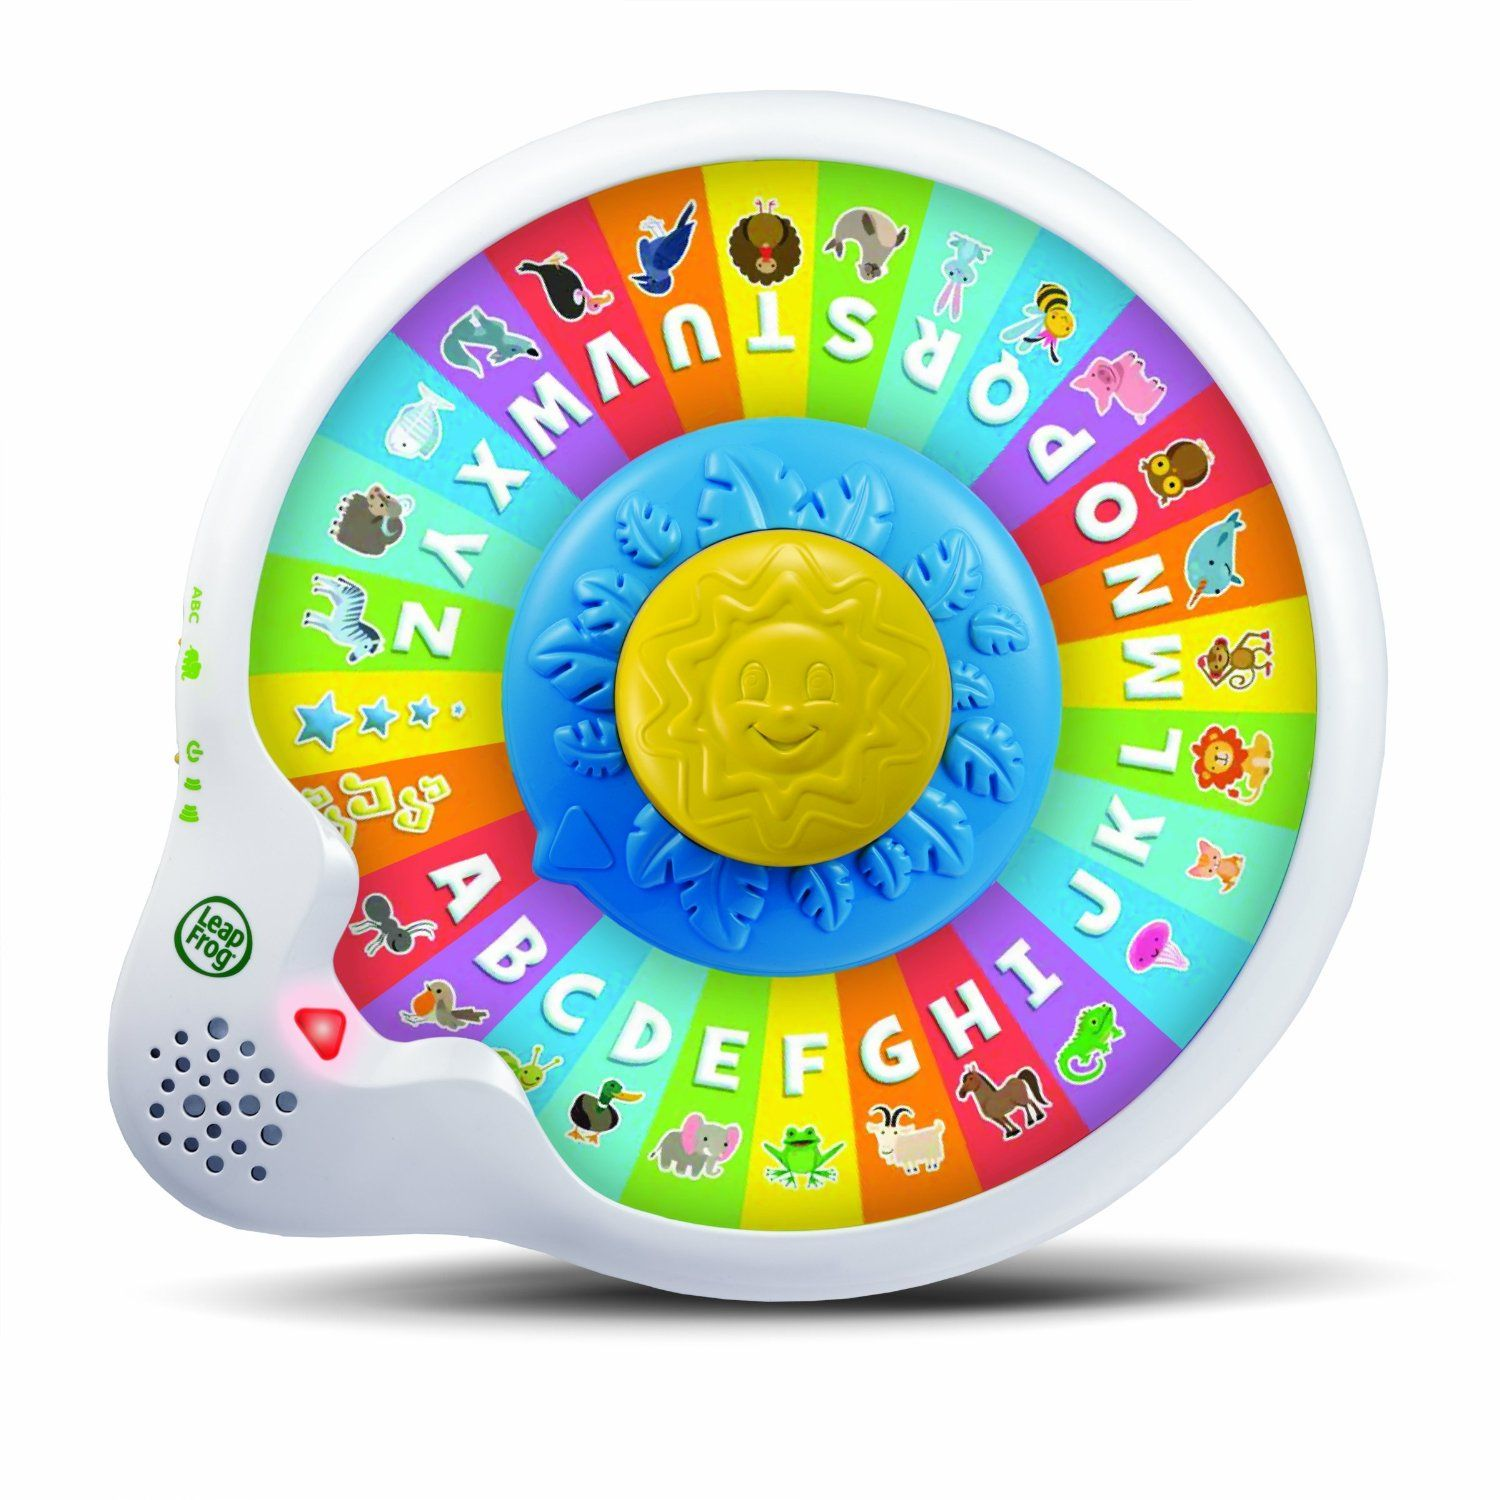 Leapfrog Alphabet Zoo Spinner 1 Year Old Boy Gifts Pinterest